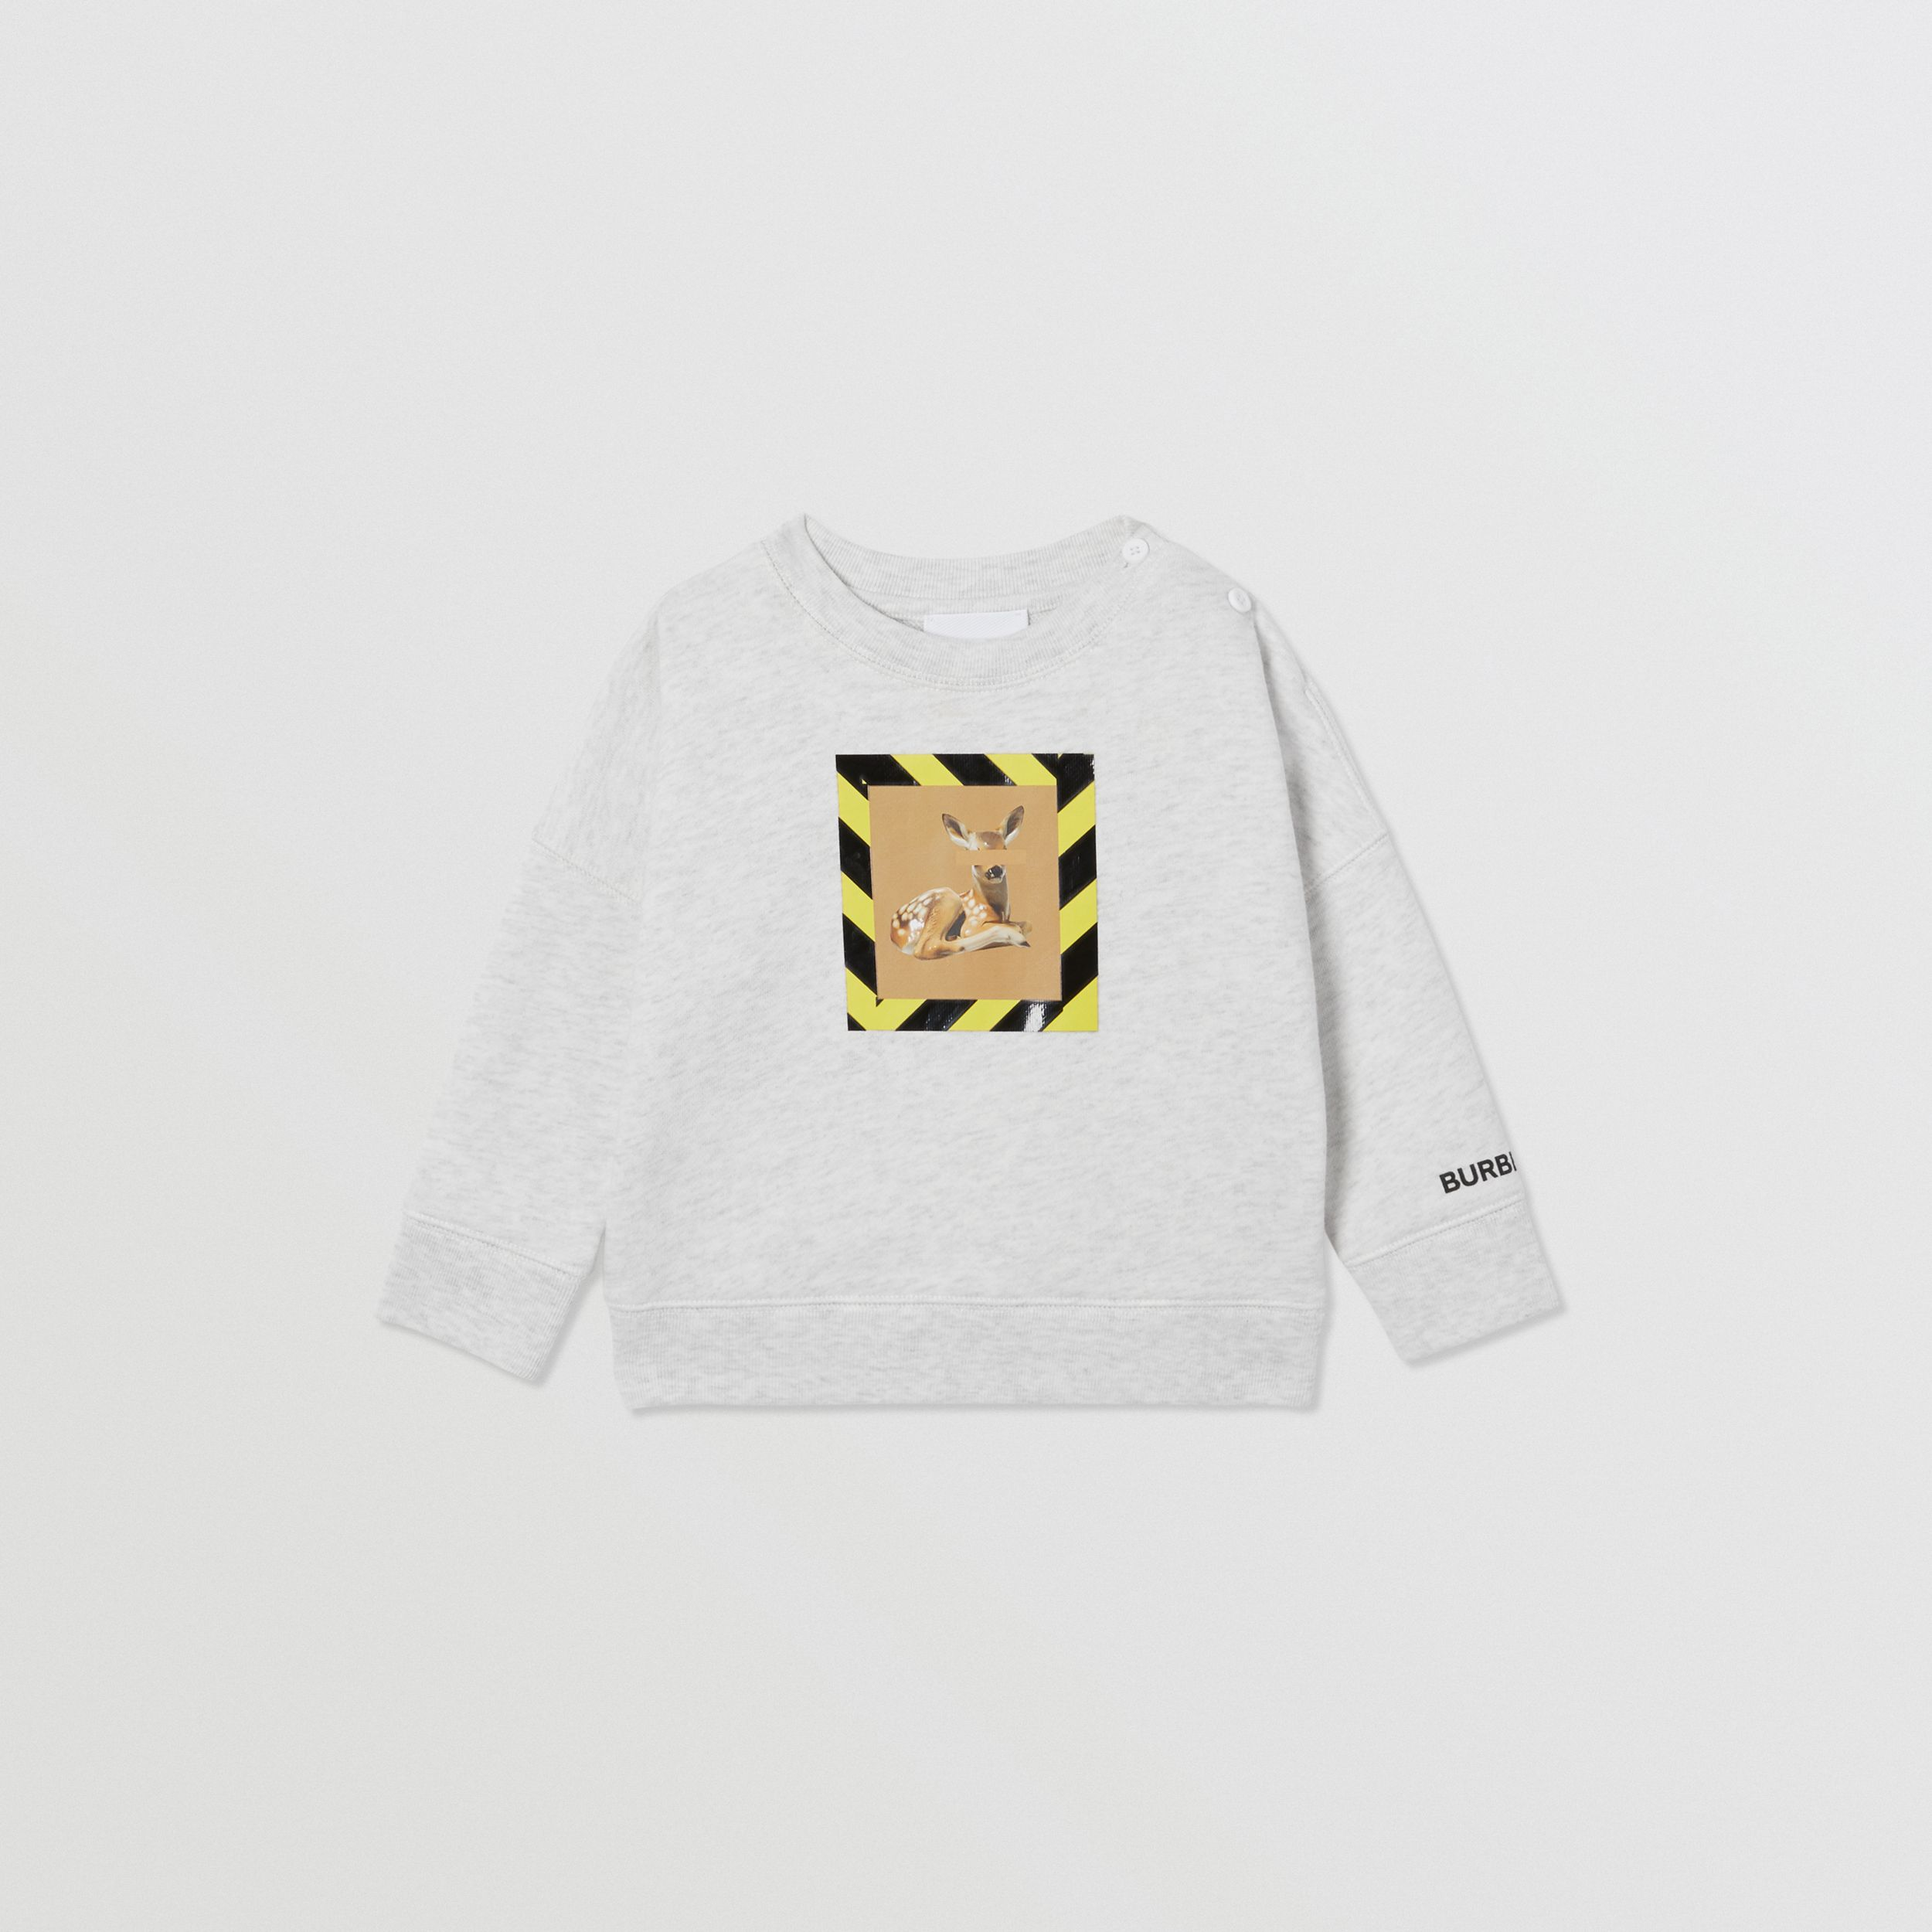 Deer Print Cotton Sweatshirt in White Melange - Children | Burberry - 1